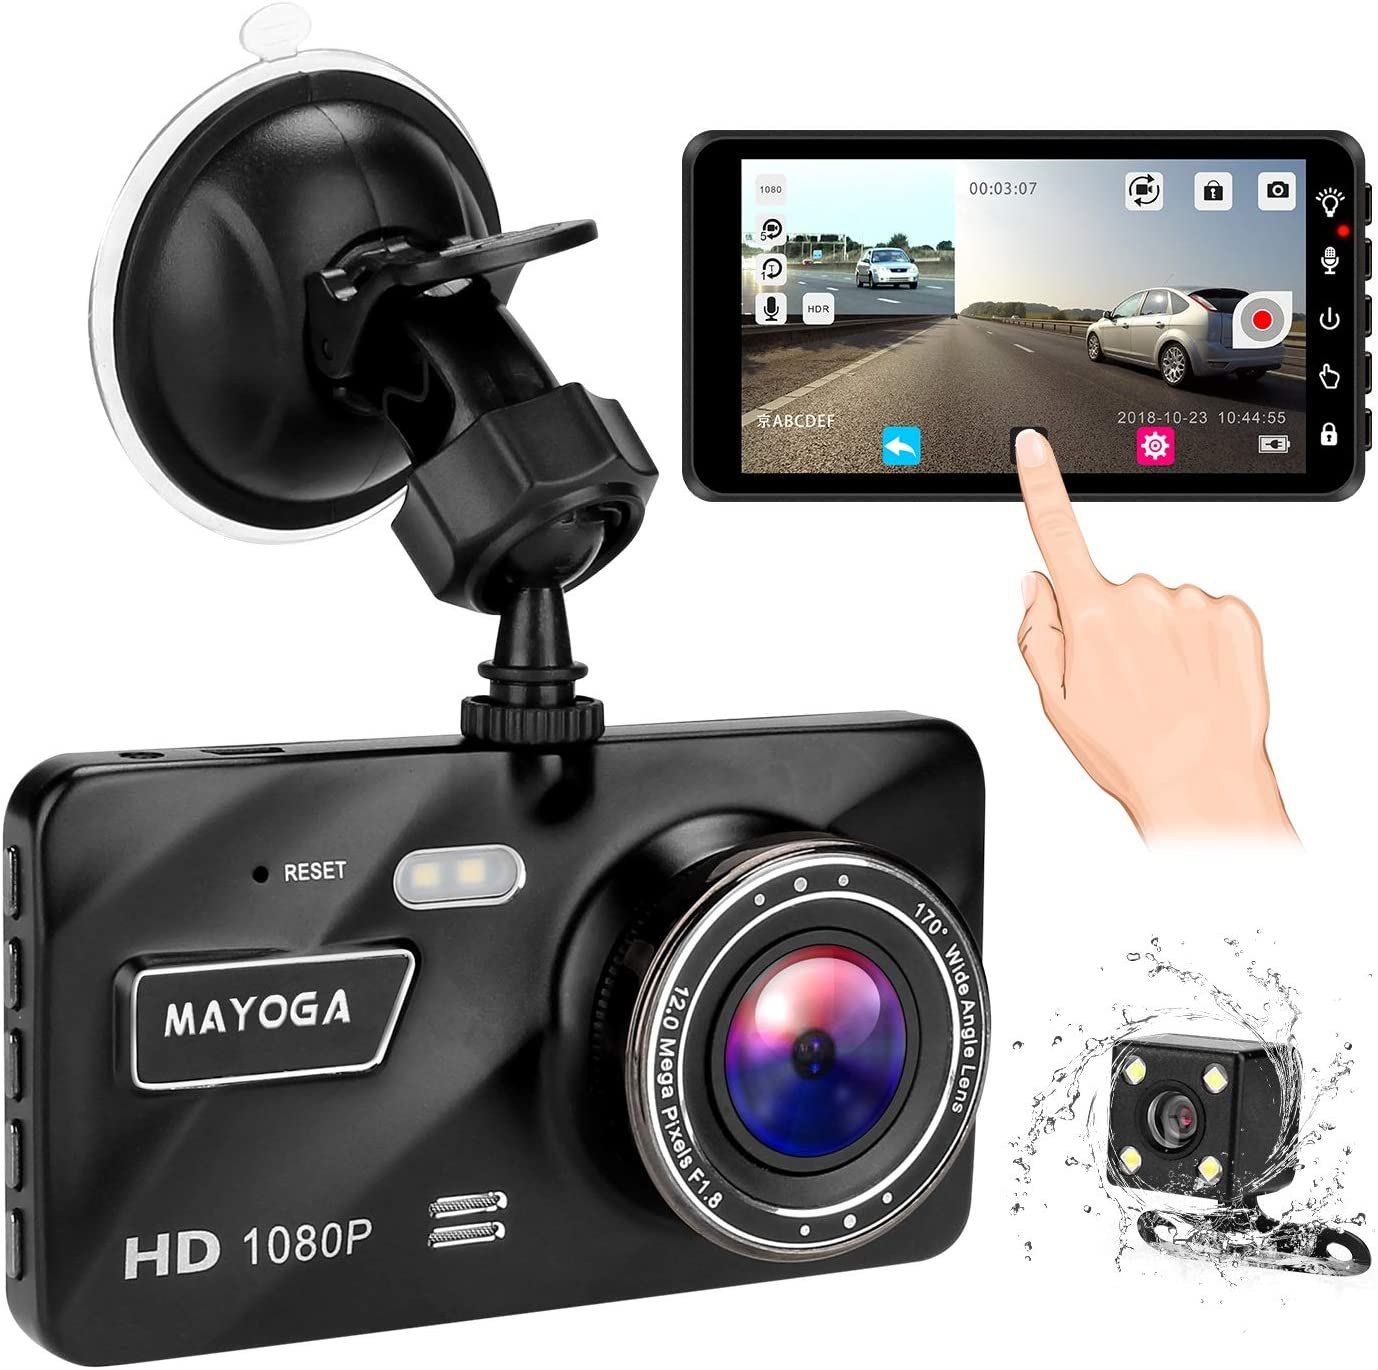 MAYOGA Dash Cam 1080P Car Dashboard Camera Wide Angle Driving Camera Recorder 4.0 inch HD IPS Display and 170 Degree Wide Angle View